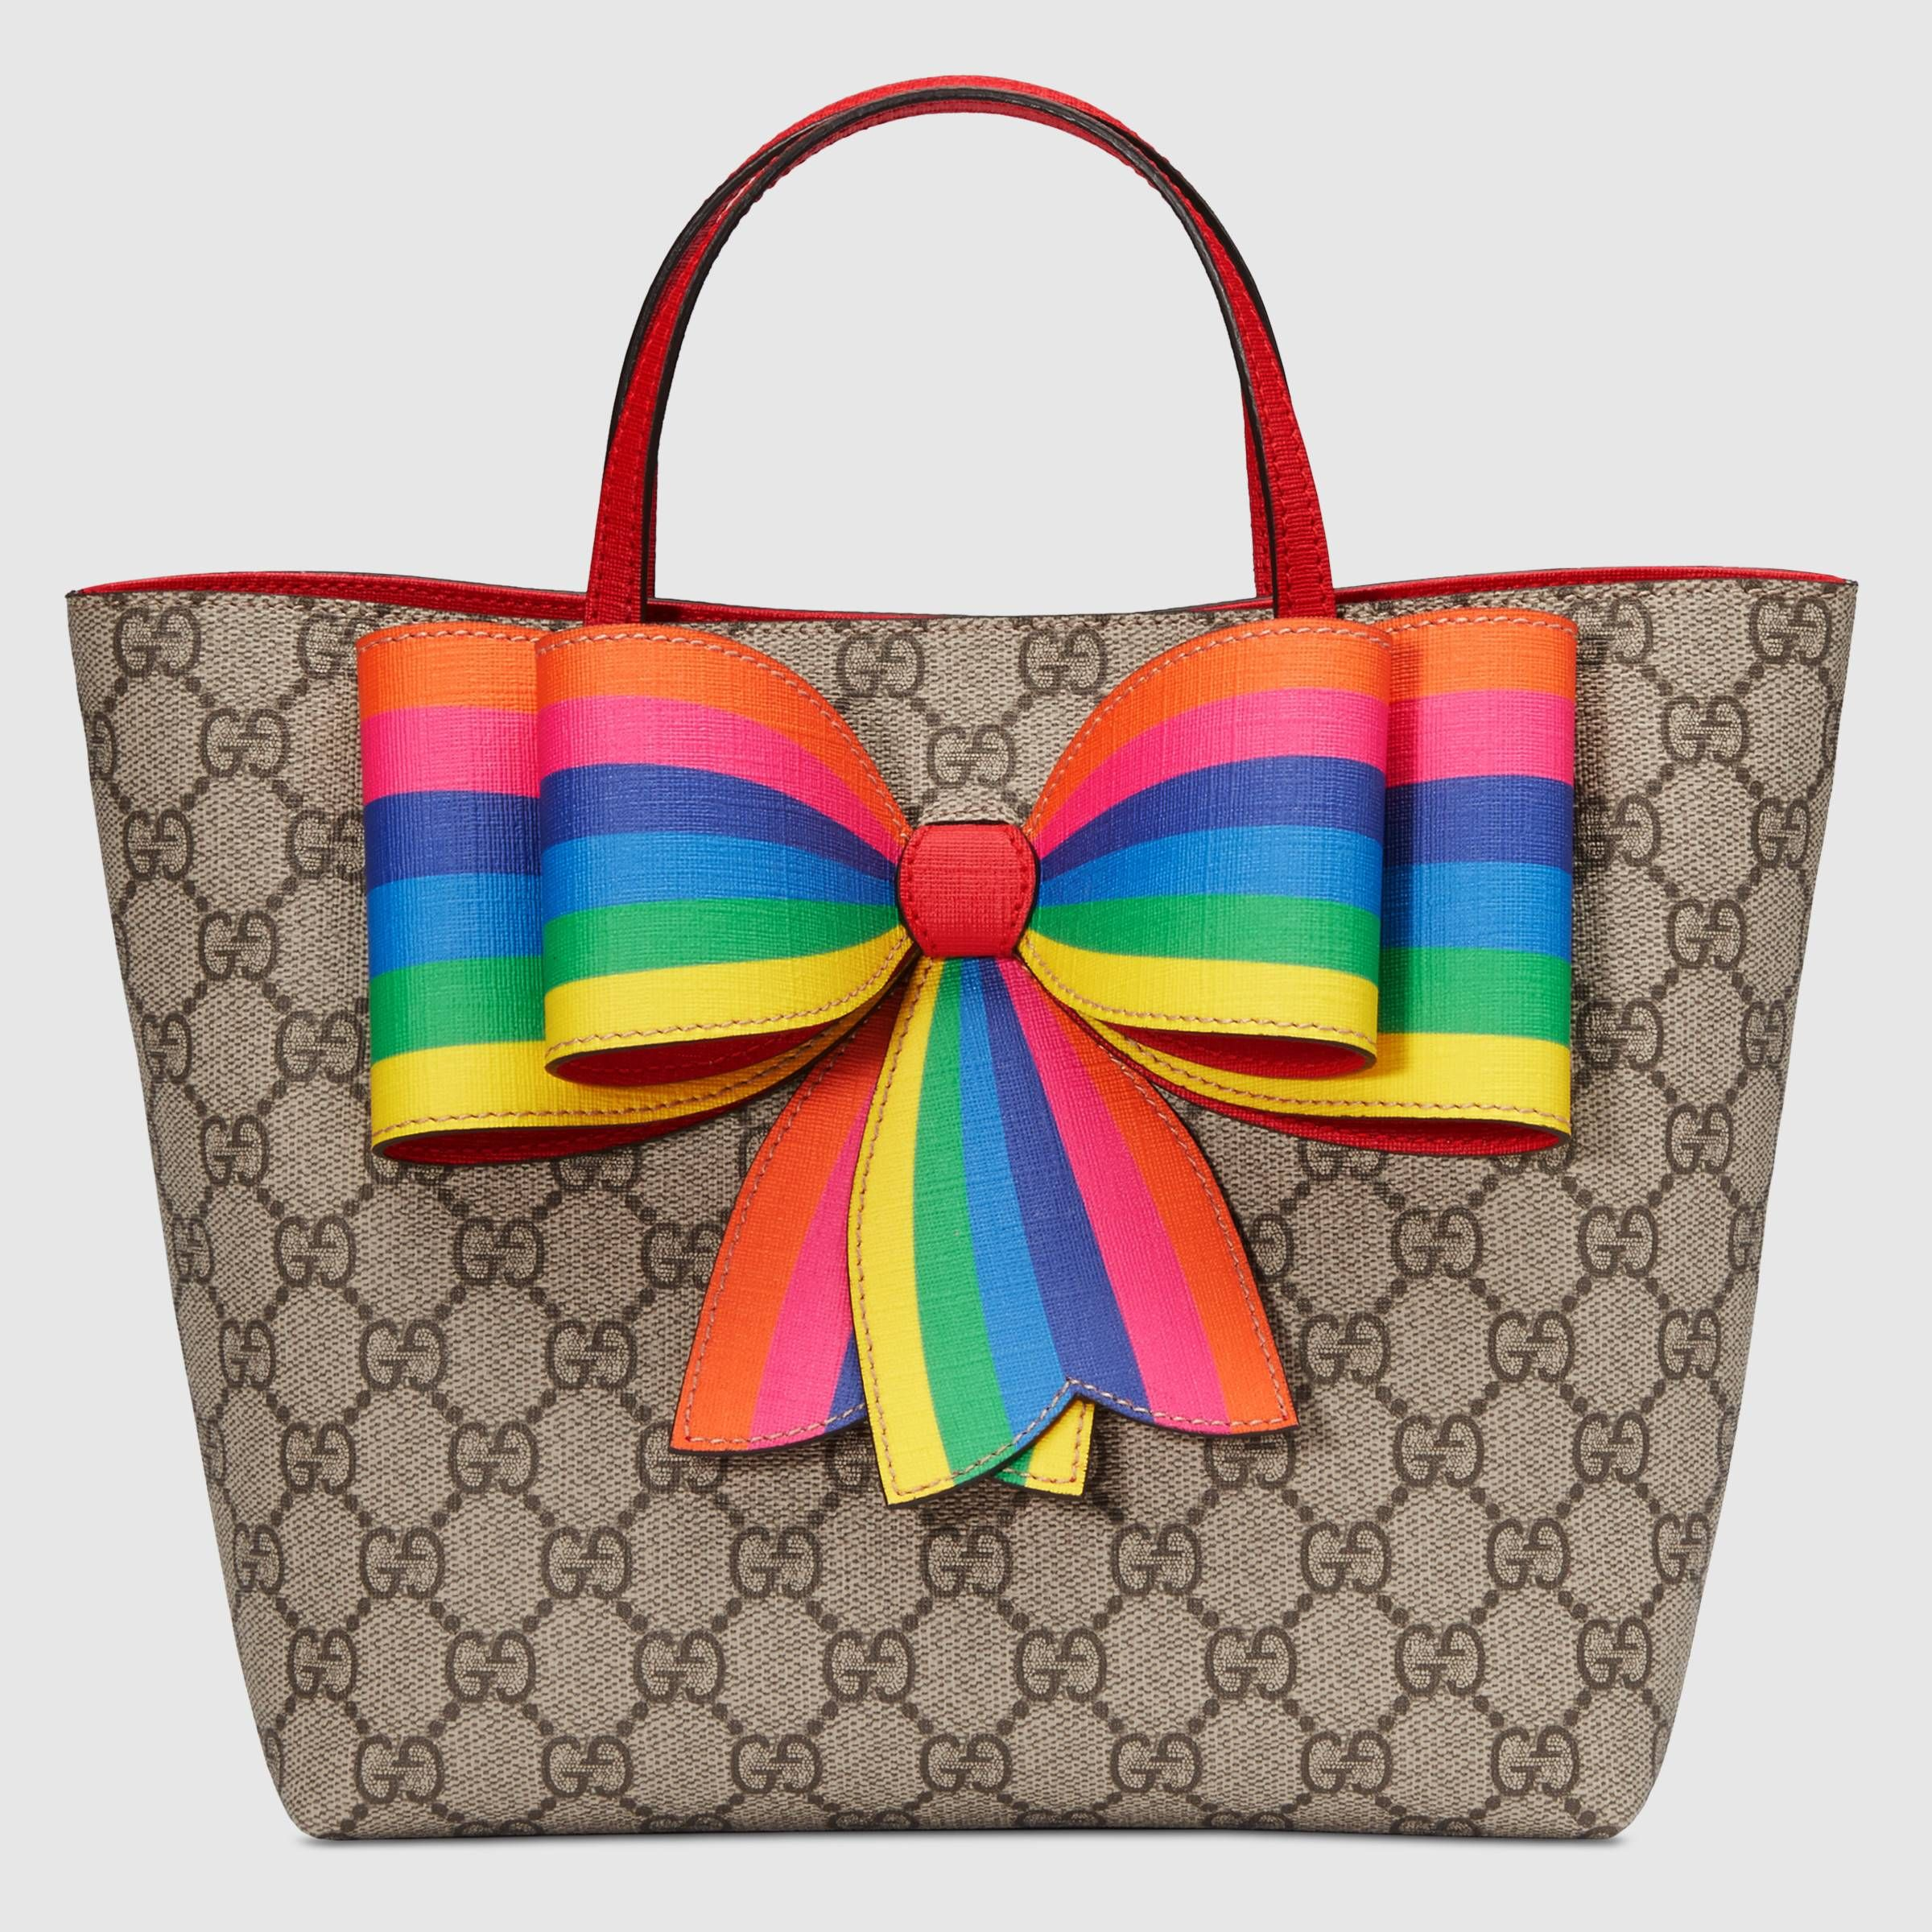 Children s GG Supreme rainbow bow tote - Gucci Gifts for Children  5018049I6ON8690 5744a14eeac9c